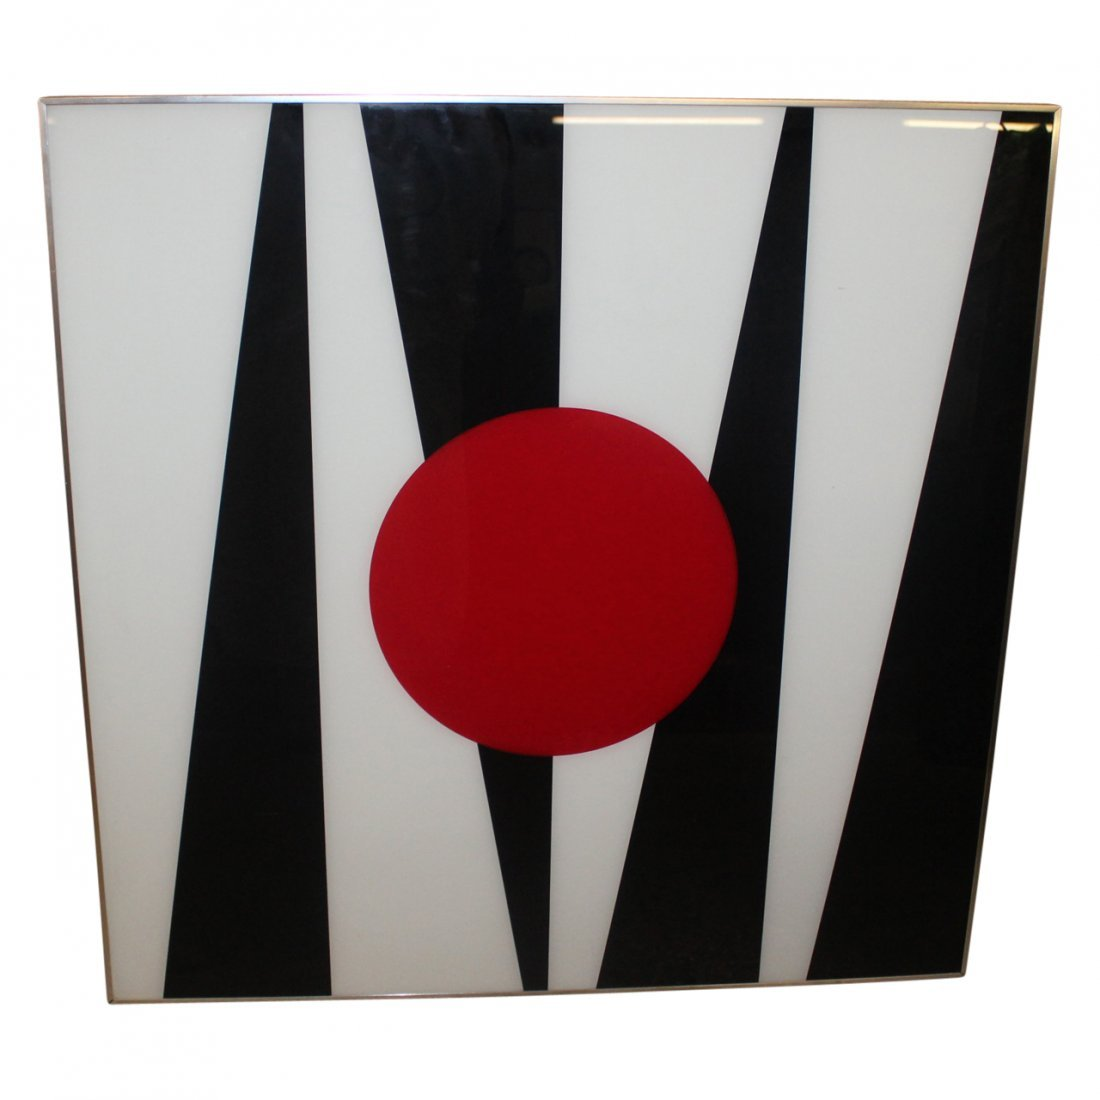 Abstract in Black & Red Turner Mfg.